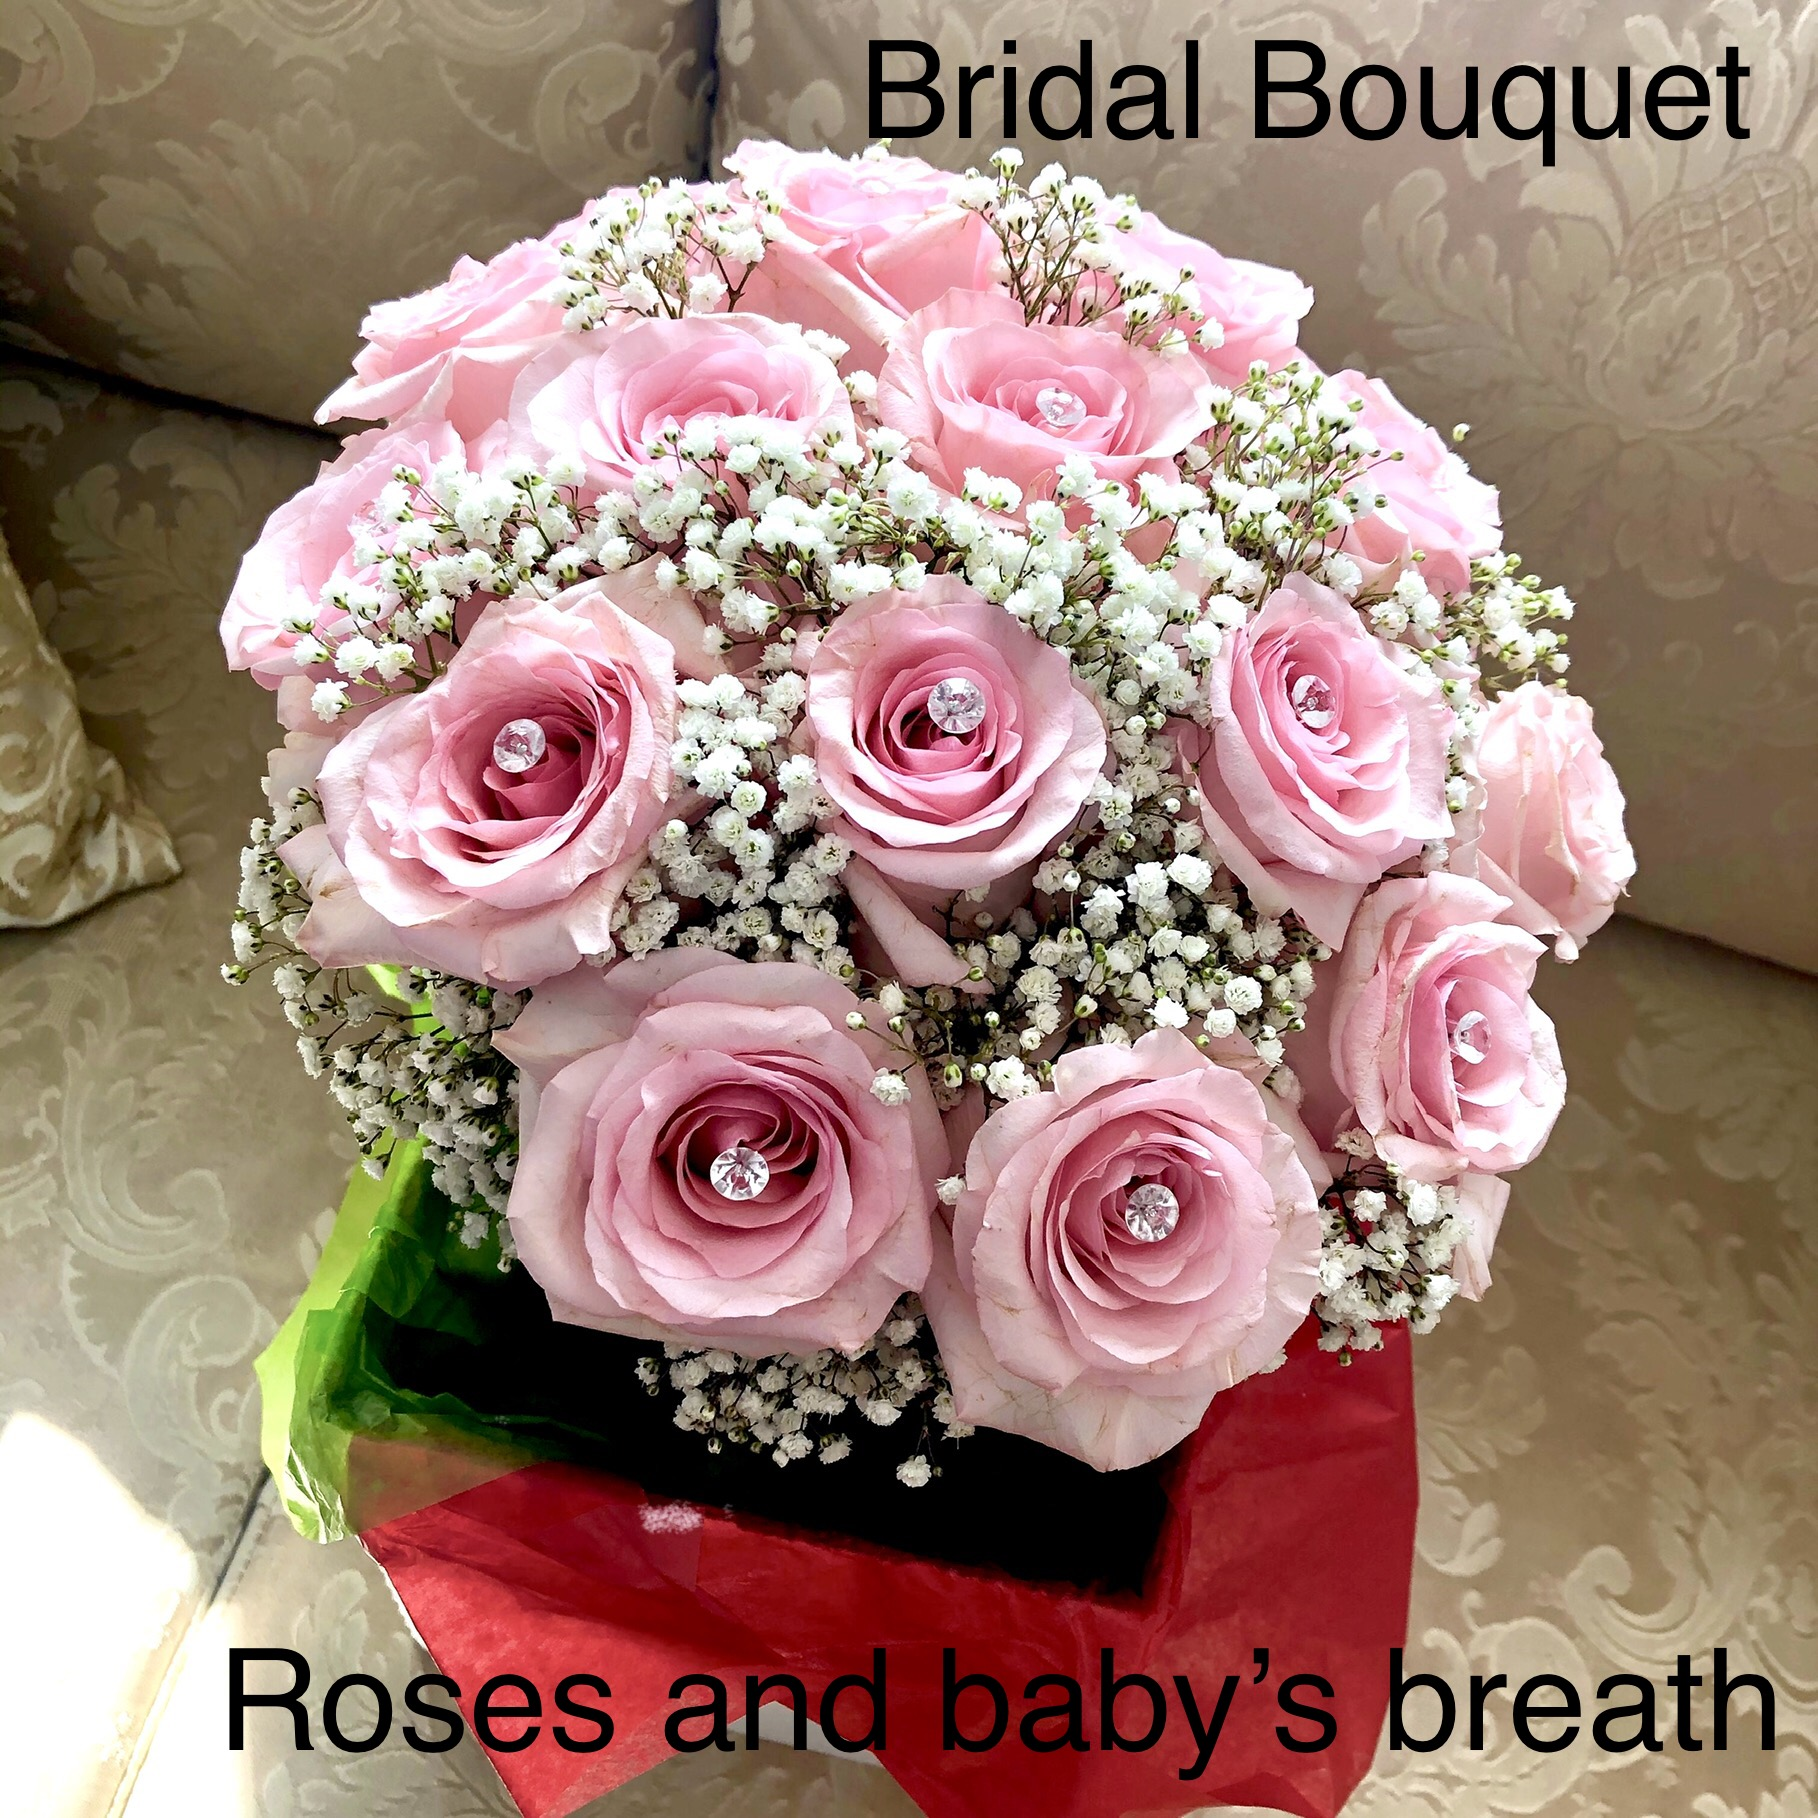 Bridal Bouquet Roses and Babies Breath